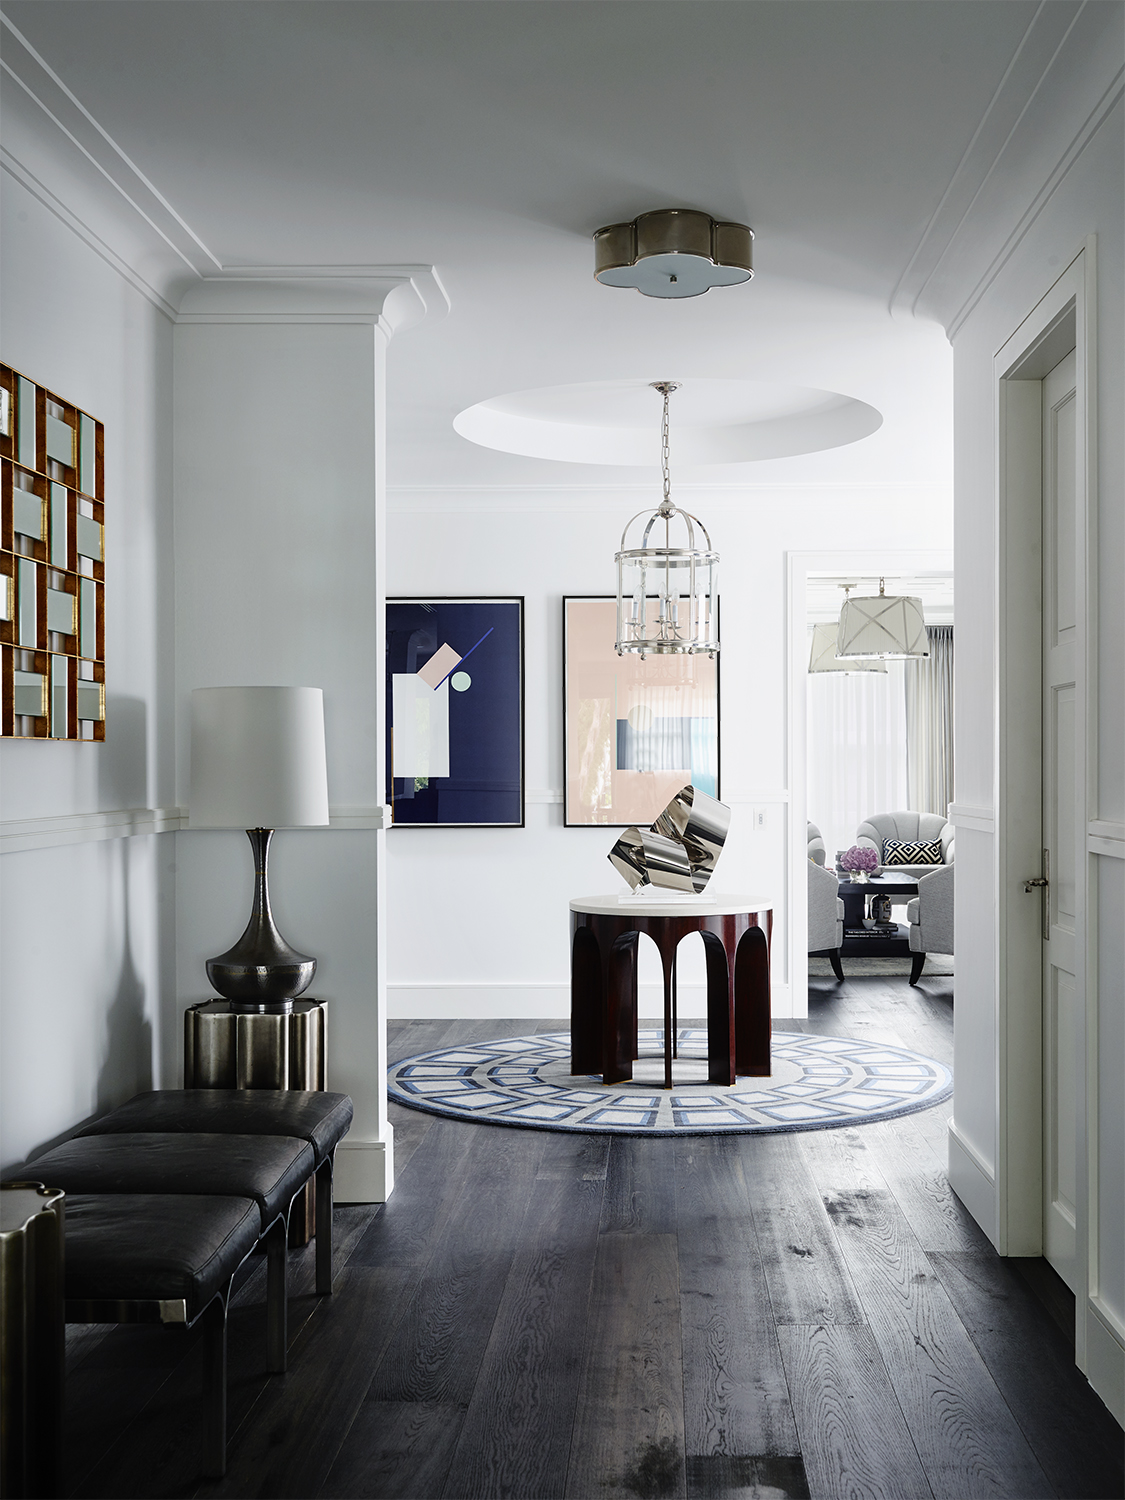 Greg Natale, Interior Design, Rose Bay, Sydney